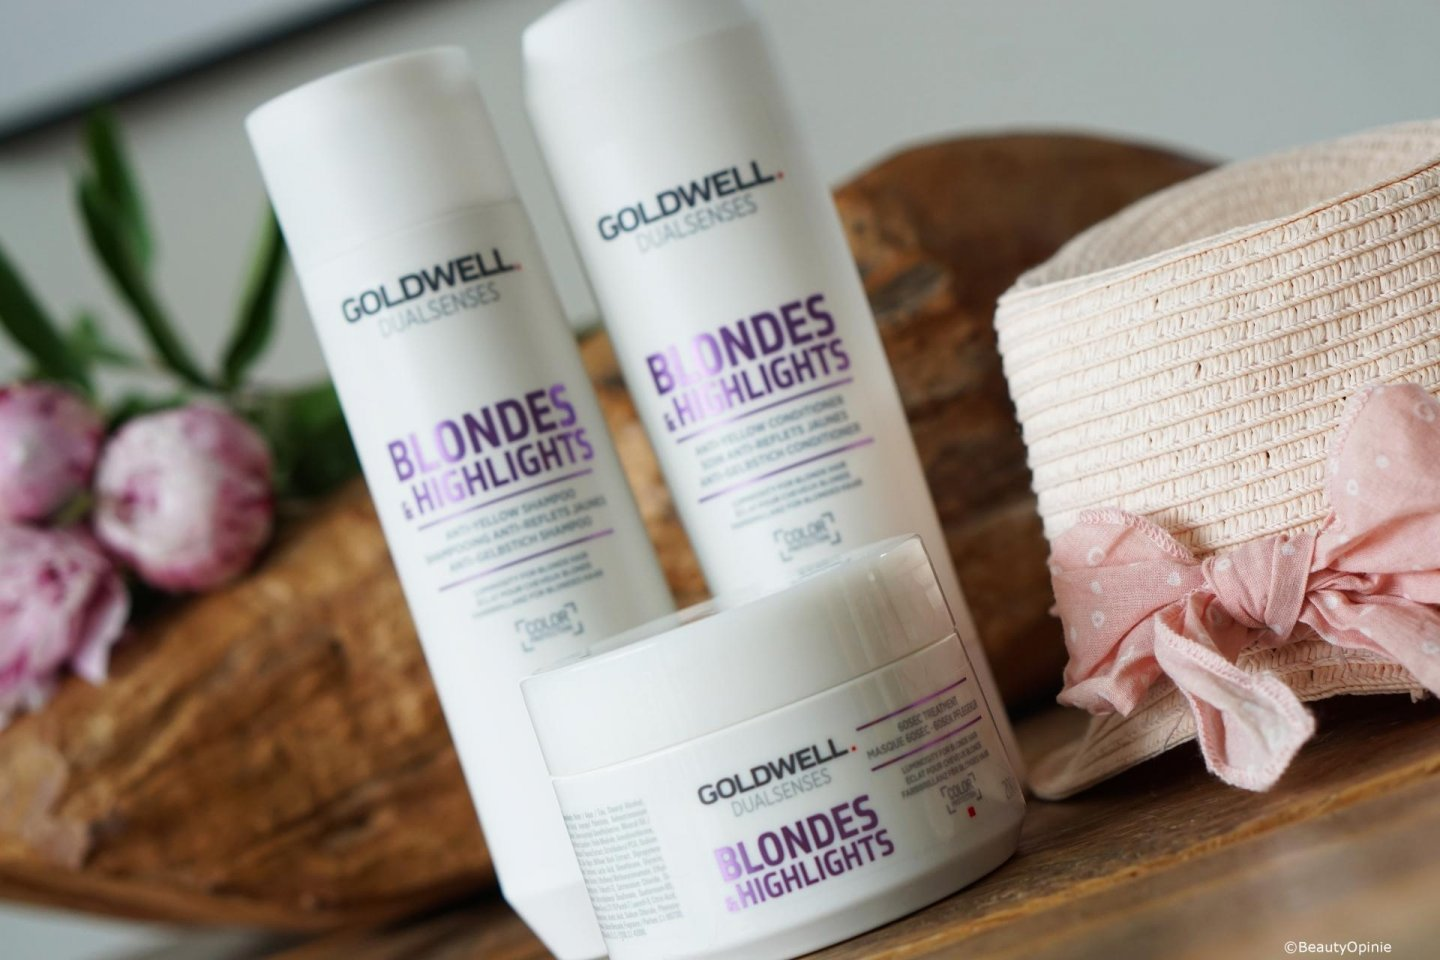 oldwell DualSenses Blondes & Highlights lijn review